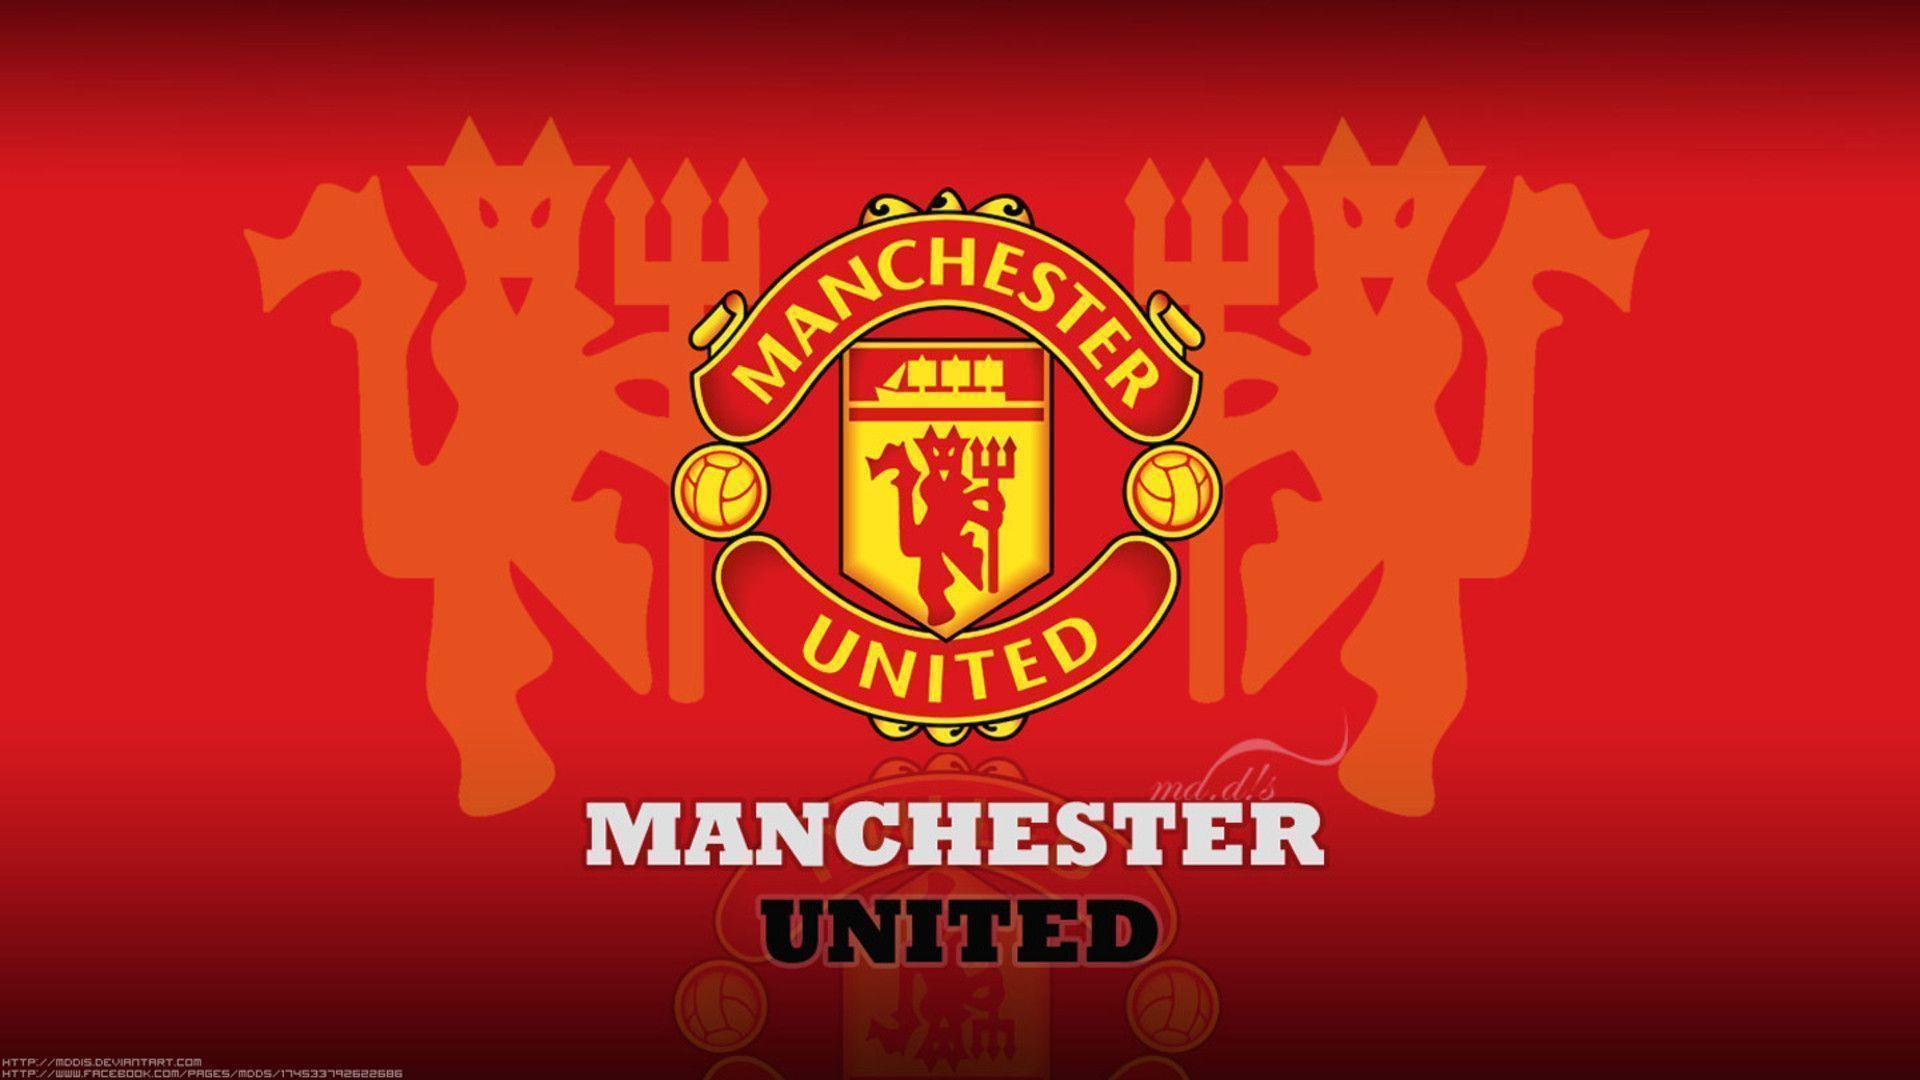 Manchester United Wallpaper Hd 2014 | HD Wallpaper and Download ...